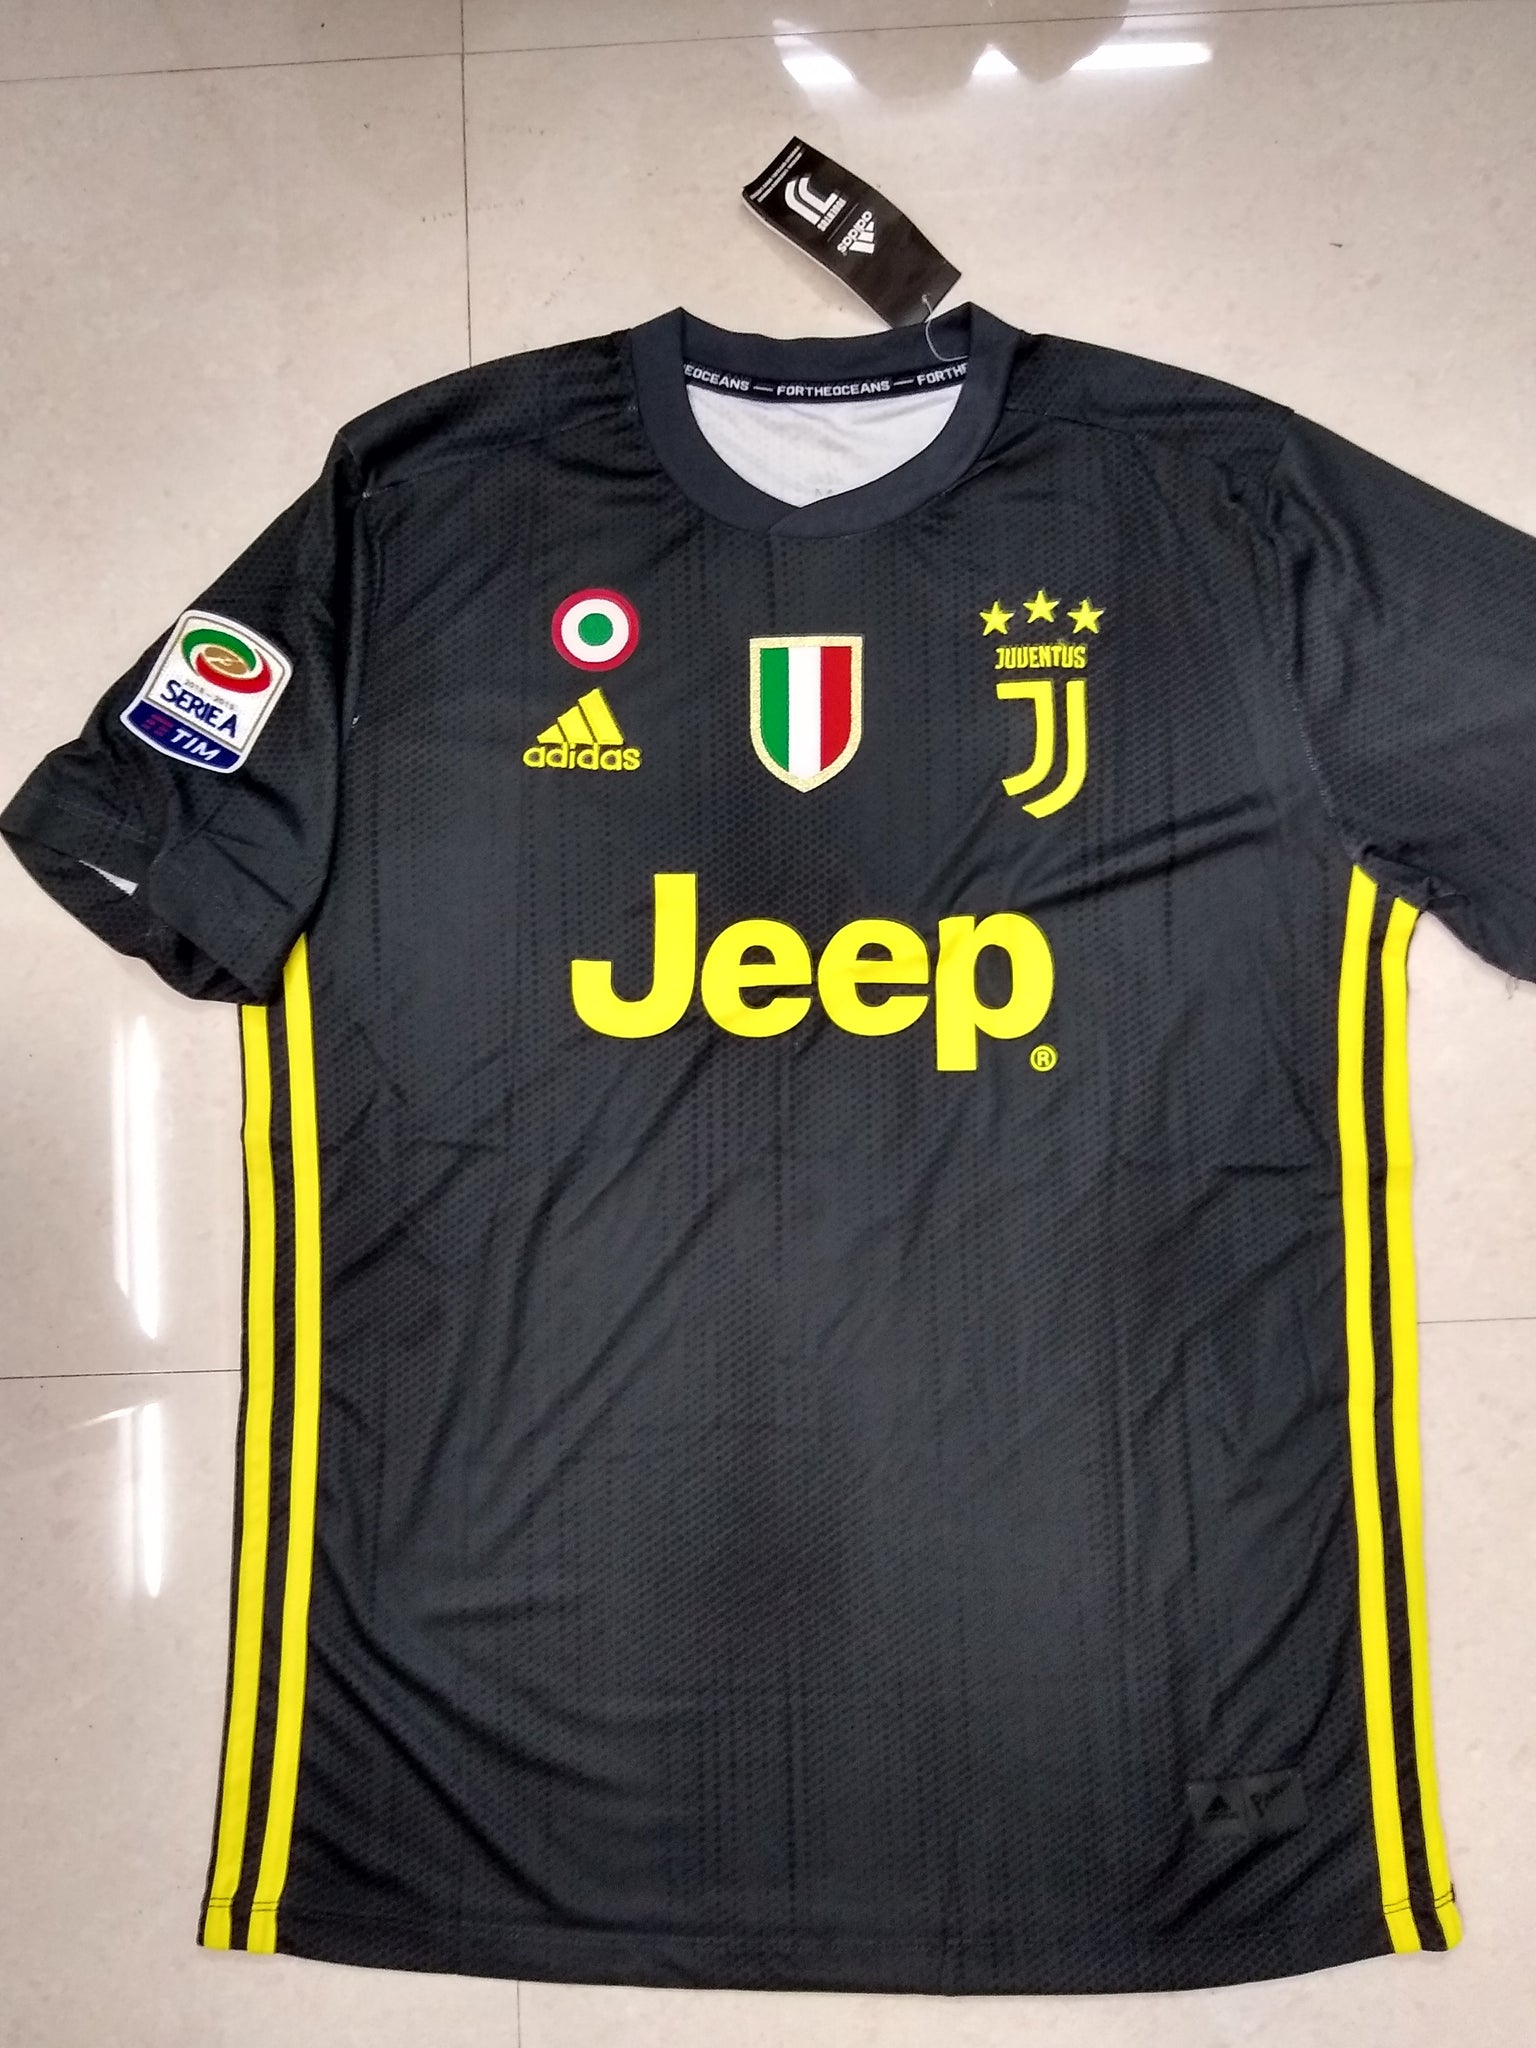 on sale 902dc 1e7a8 Juventus Ronaldo Home Football Jersey Season 2018-19 online ...